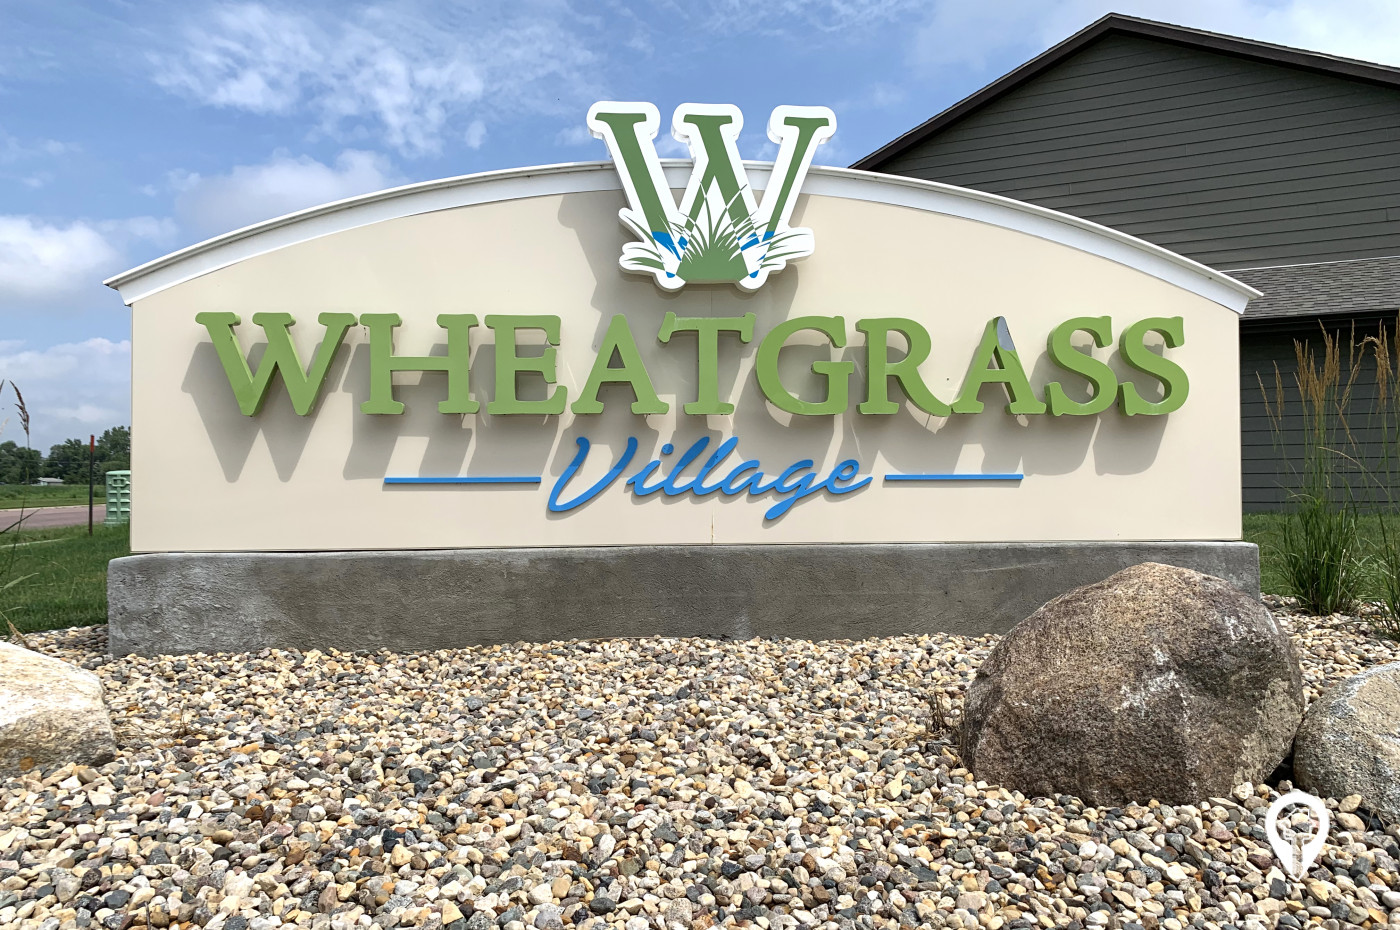 Wheatgrass Village